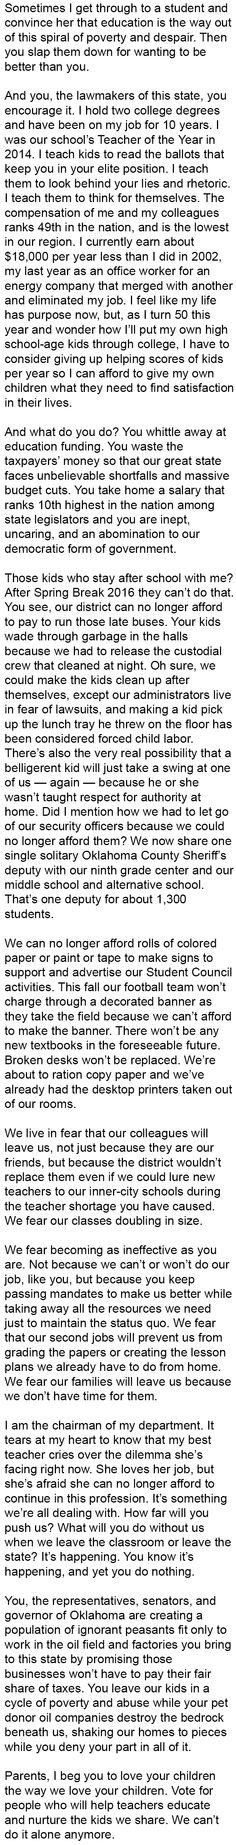 Oklahoma Schools are suffering... Read why in this powerful letter from a top high school teacher.